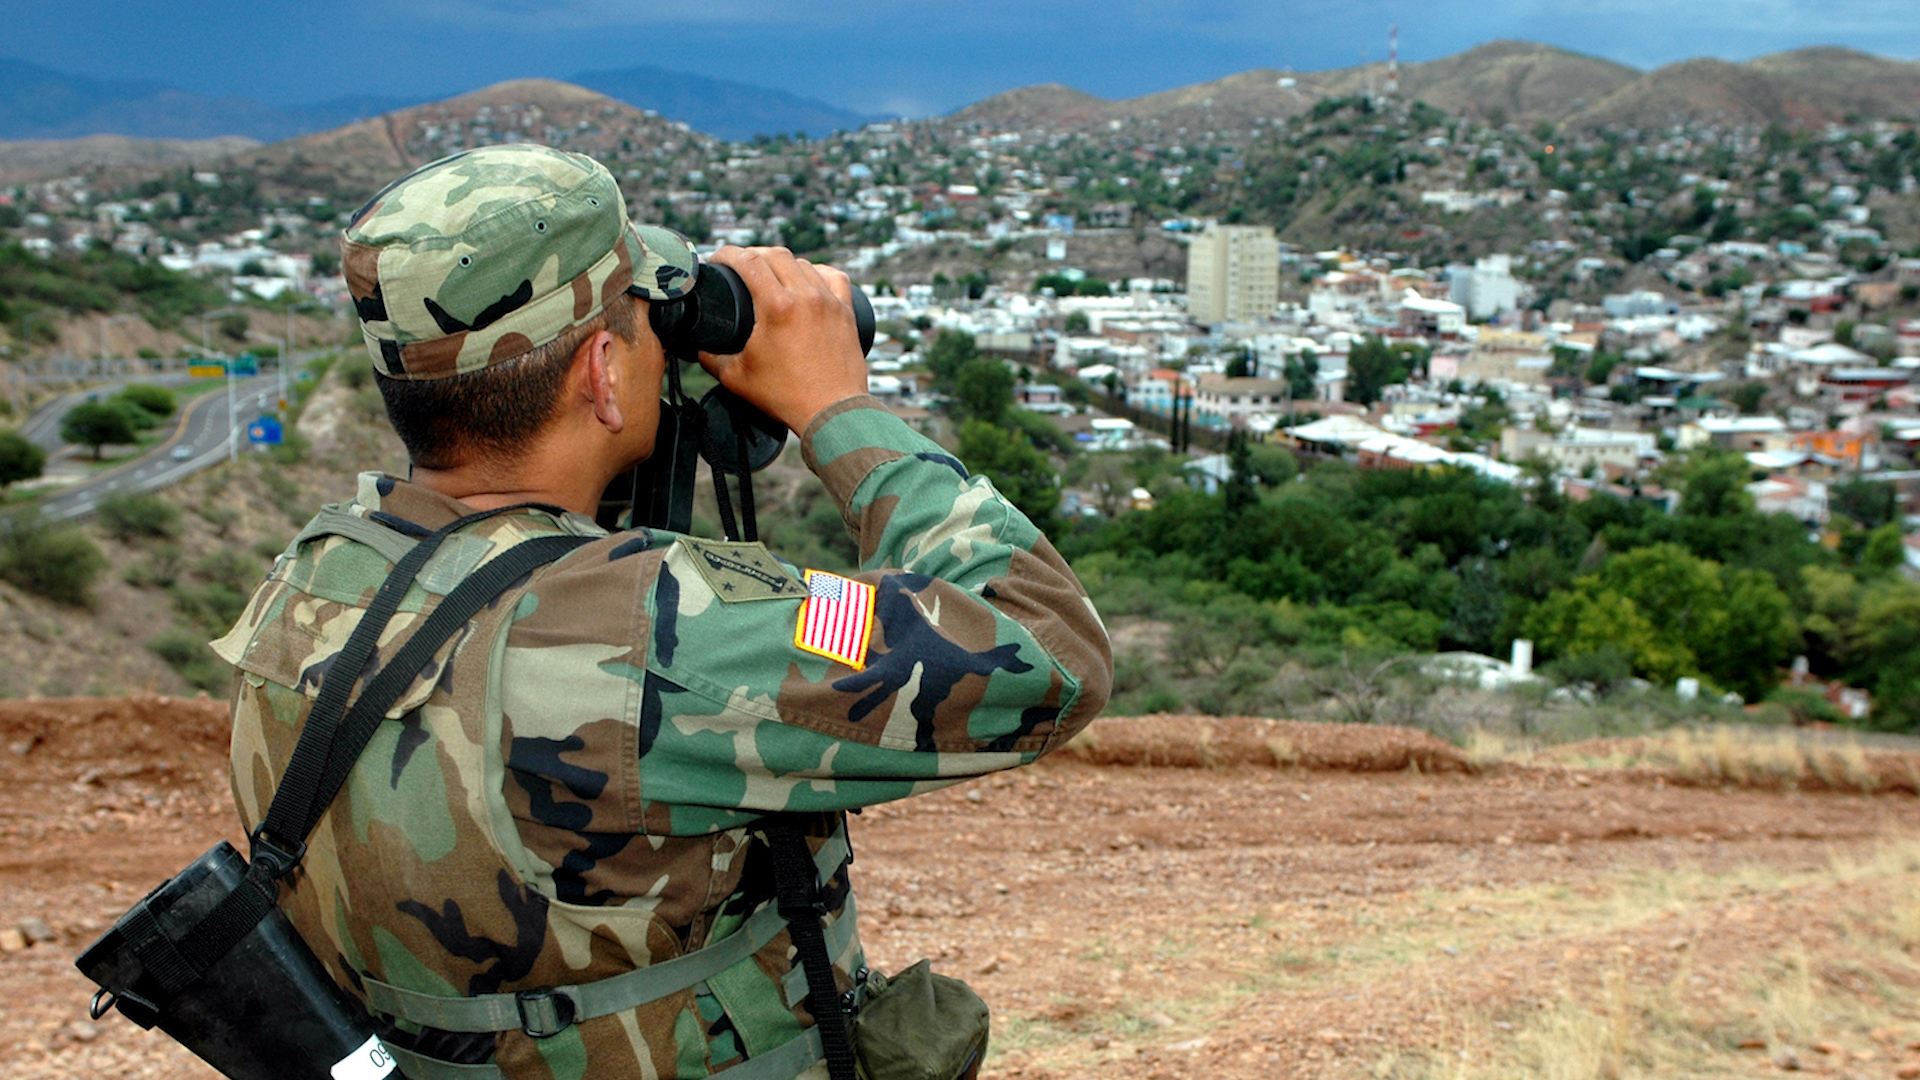 A member of the National Guard provides surveillance at the U.S.-Mexico border near Nogales, Arizona on July 19, 2006 as part of a deployment with Operation Jump Start.